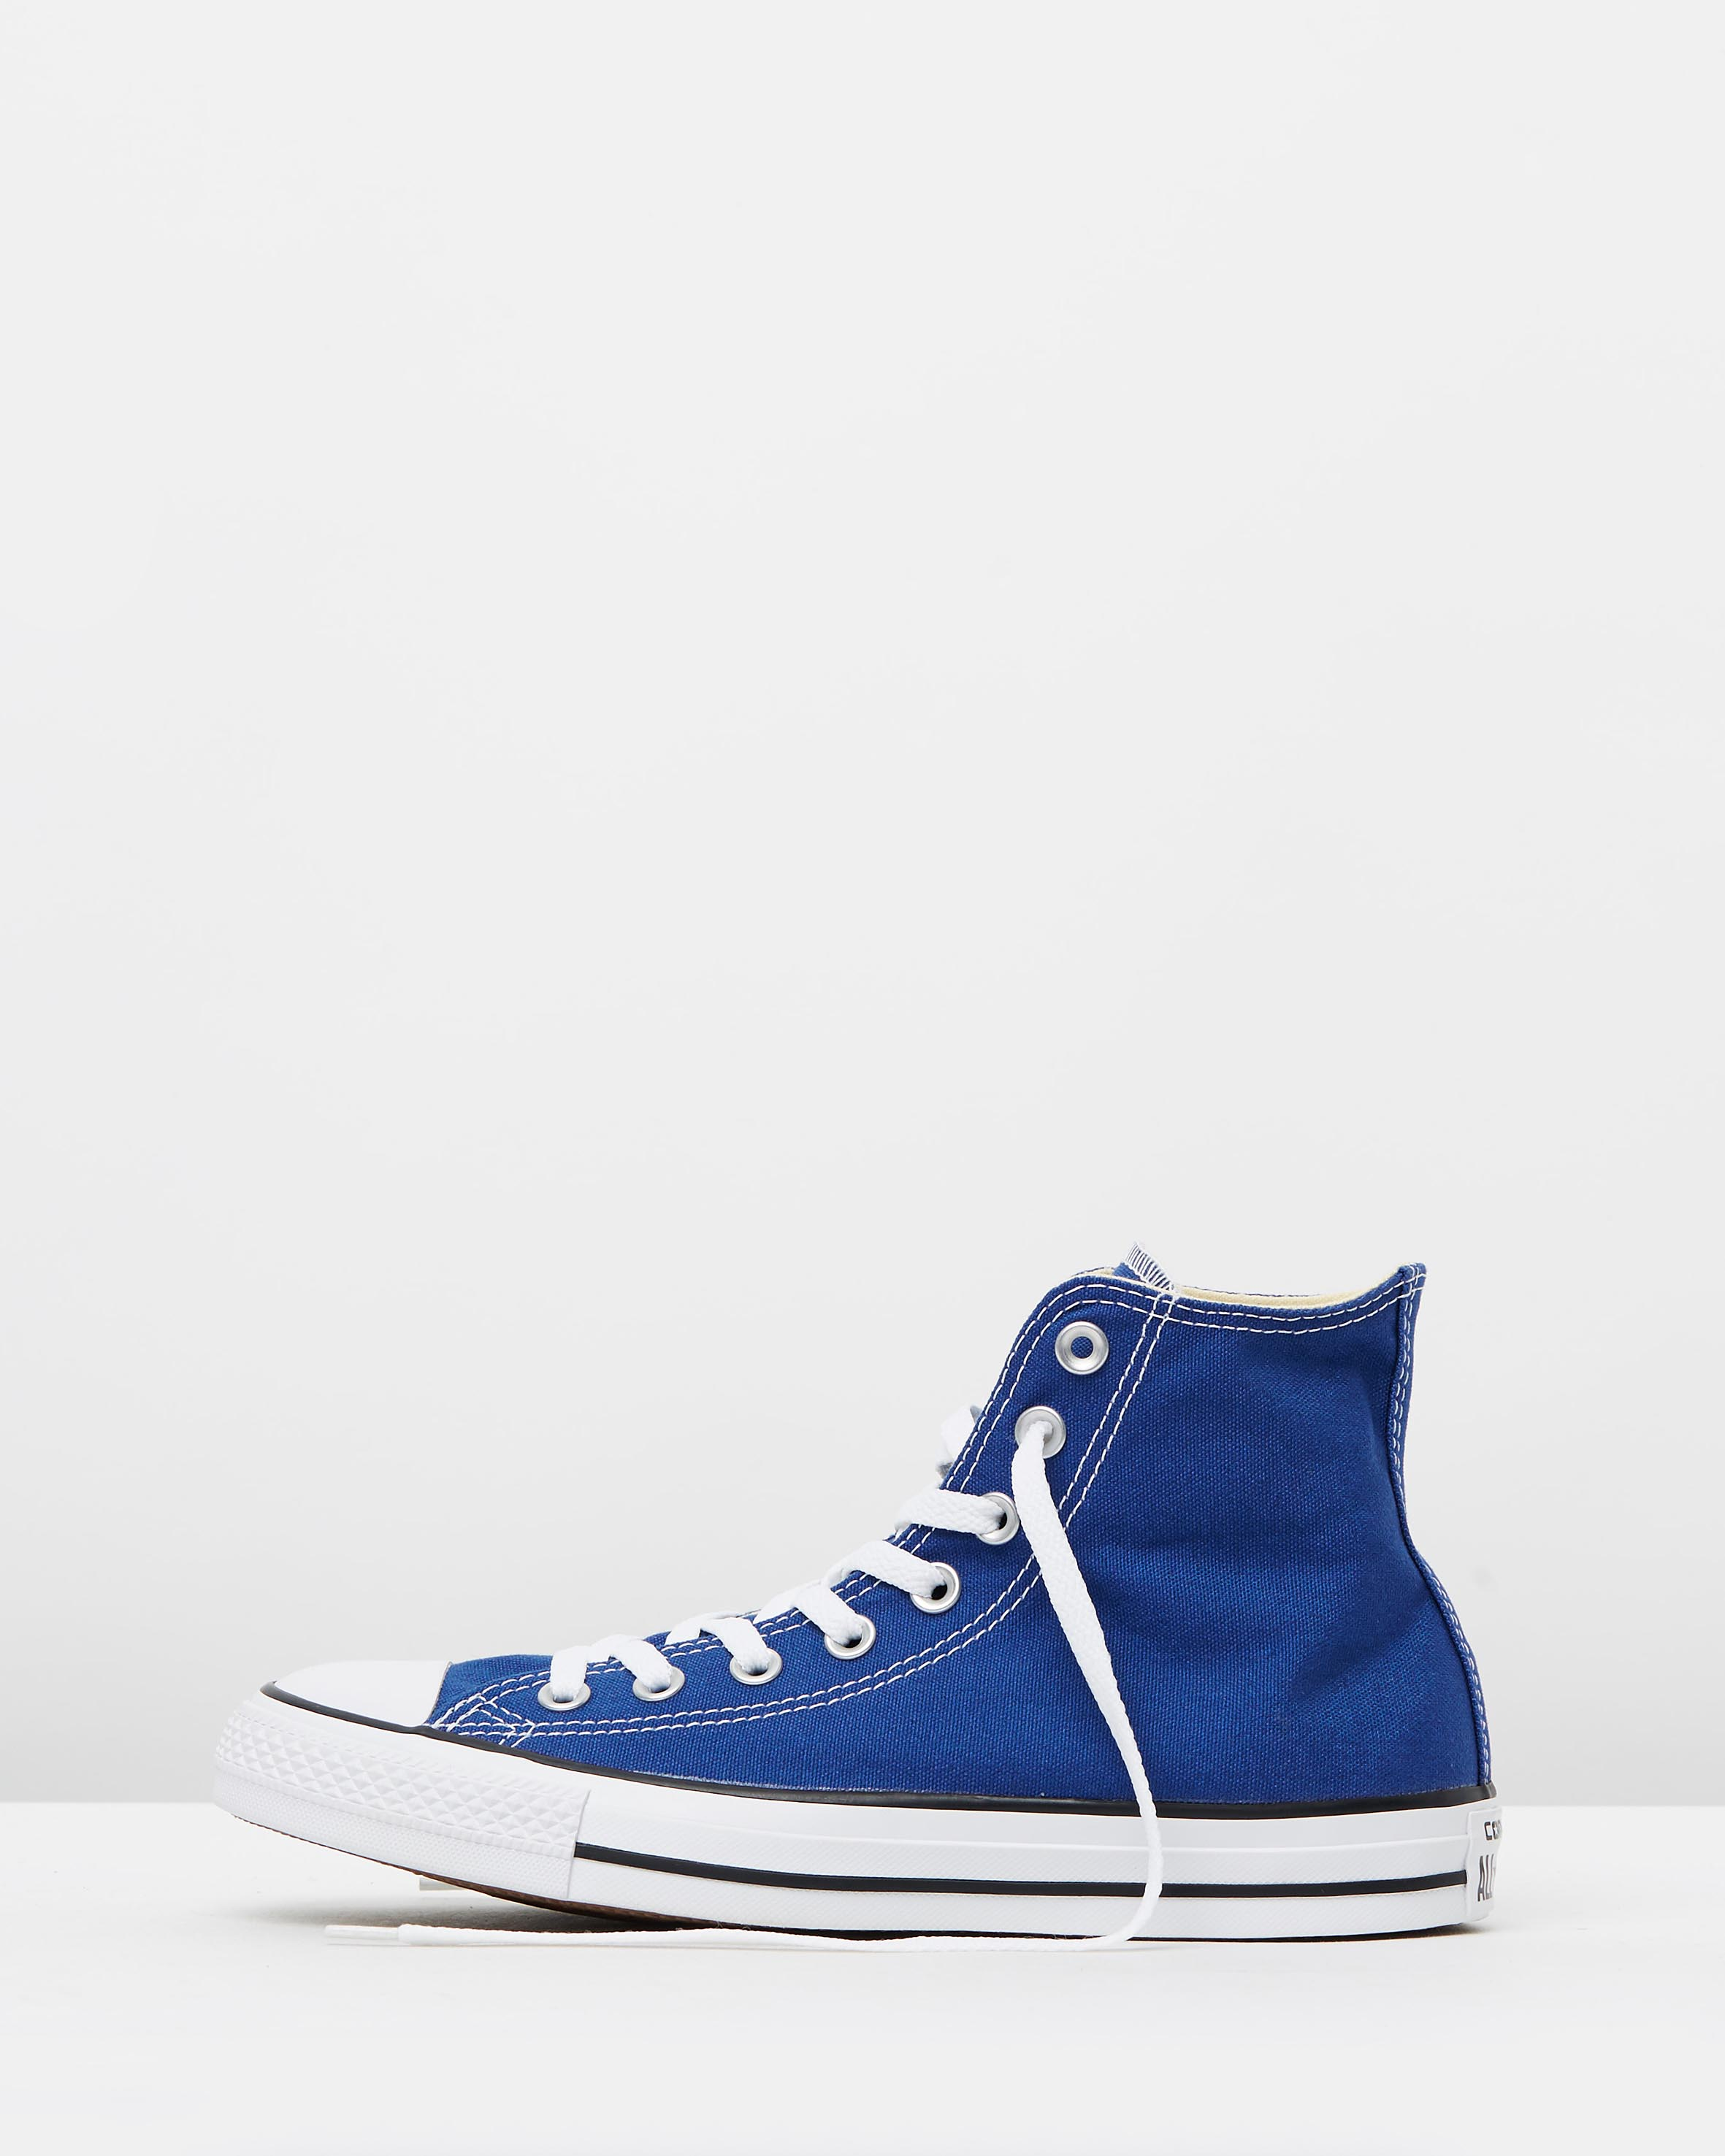 1dbe664b53f9 ... Converse Chuck Taylor All Star Hi Womens Roadtrip Blue 3 ...